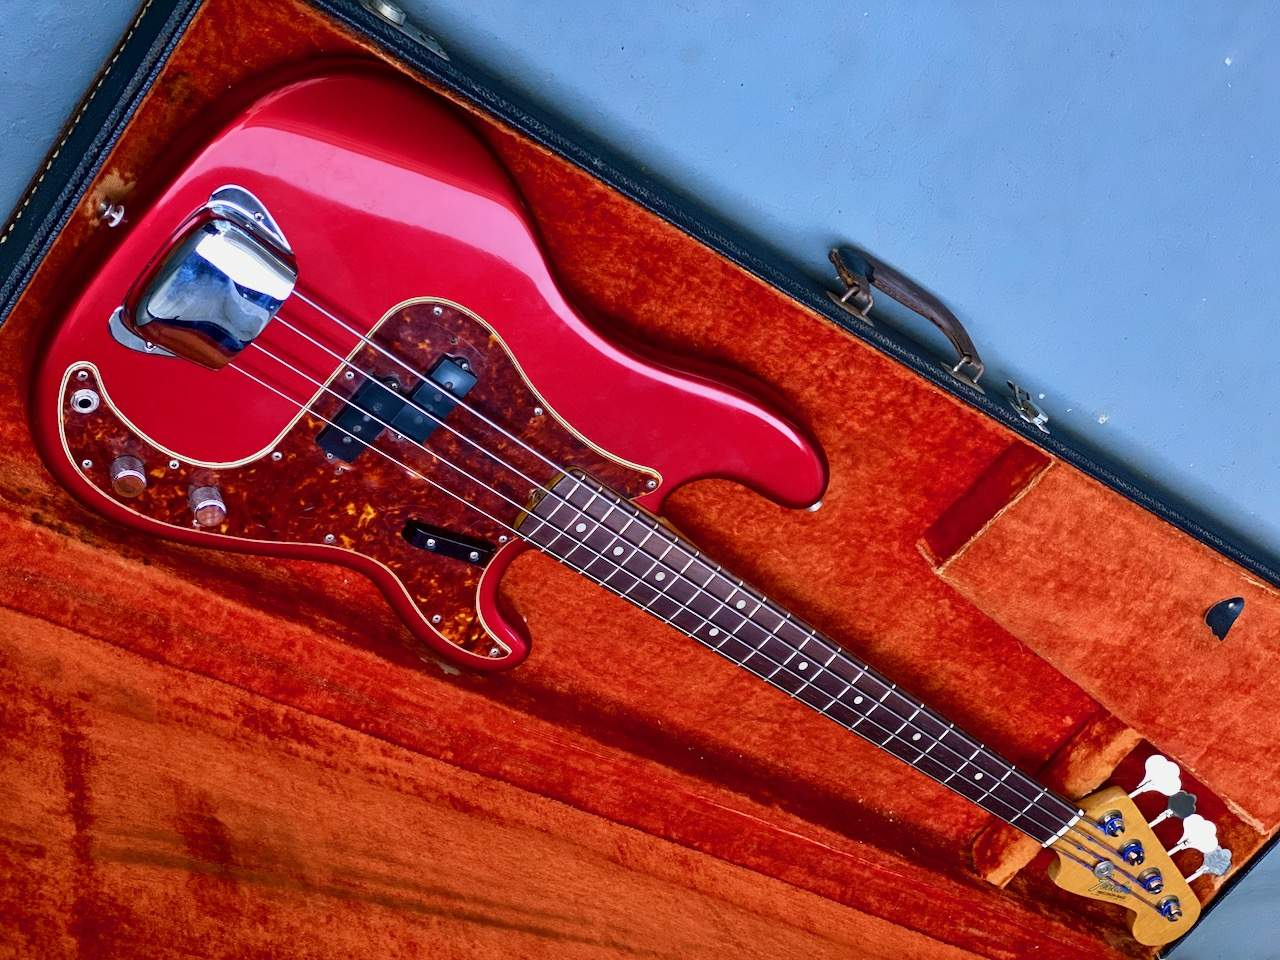 1965 Fender Precision Candy Apple Red - 50.jpeg